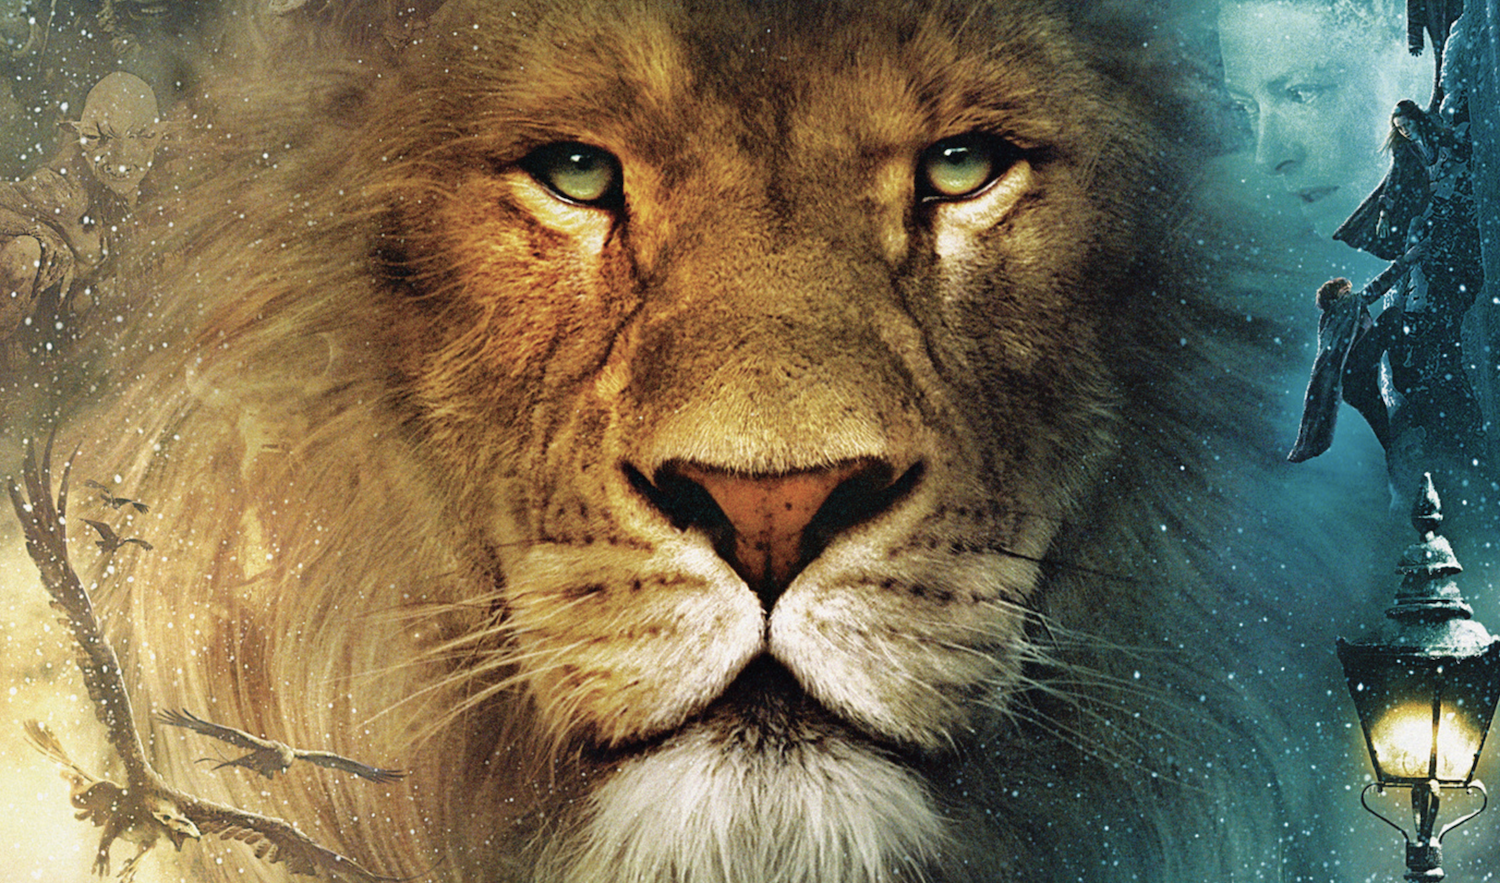 Aslan from C.S. Lewis' Narnia books. Netflix will adapt the series.